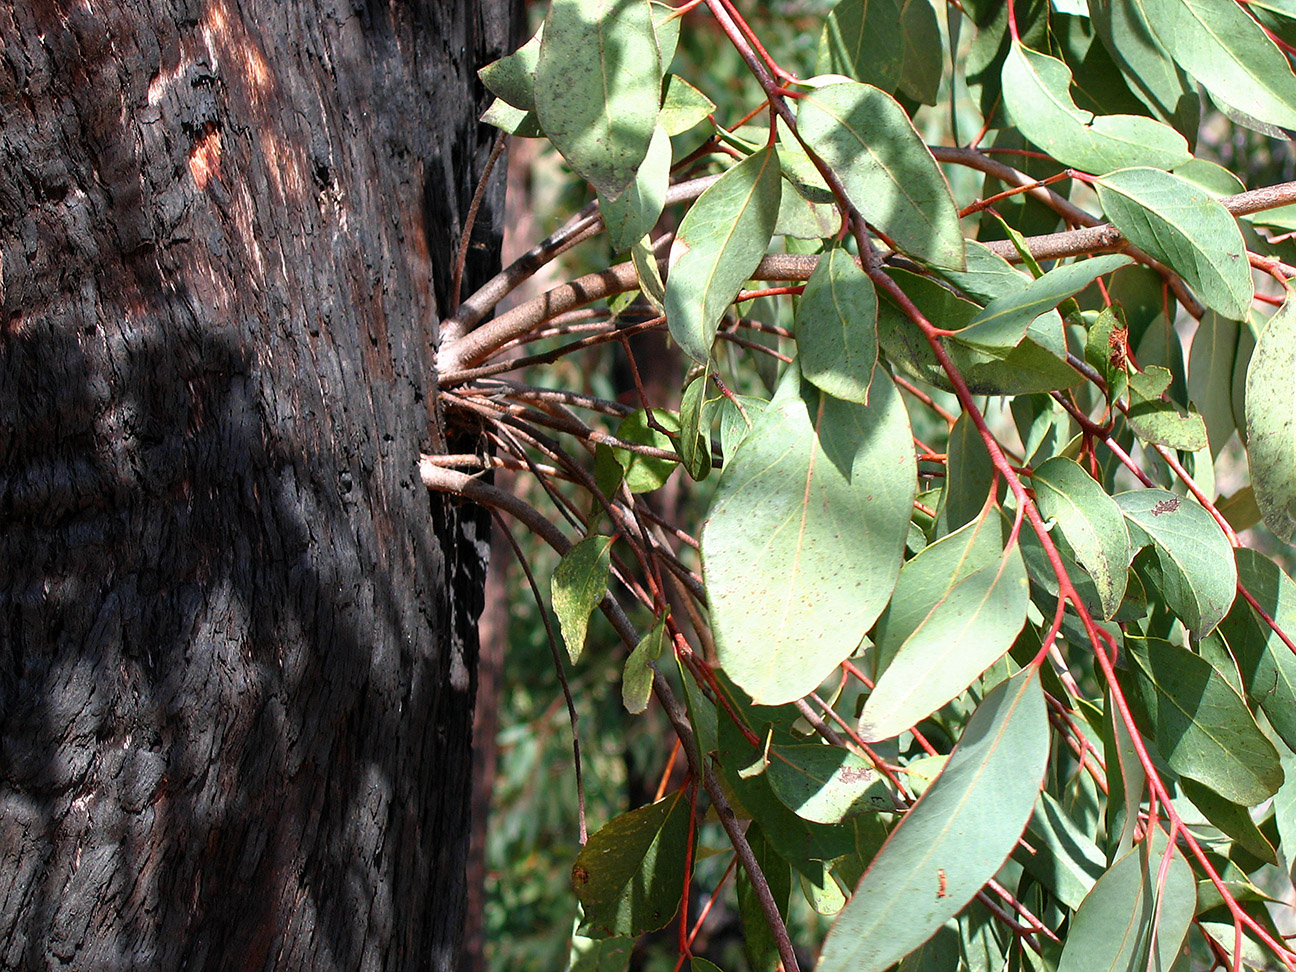 Epicormic Shoots from an Epicormic Bud on Eucalyptus following Bushfire 2, near Anglers Rest, Vic, Aust, jjron 27.3.2005.jpg